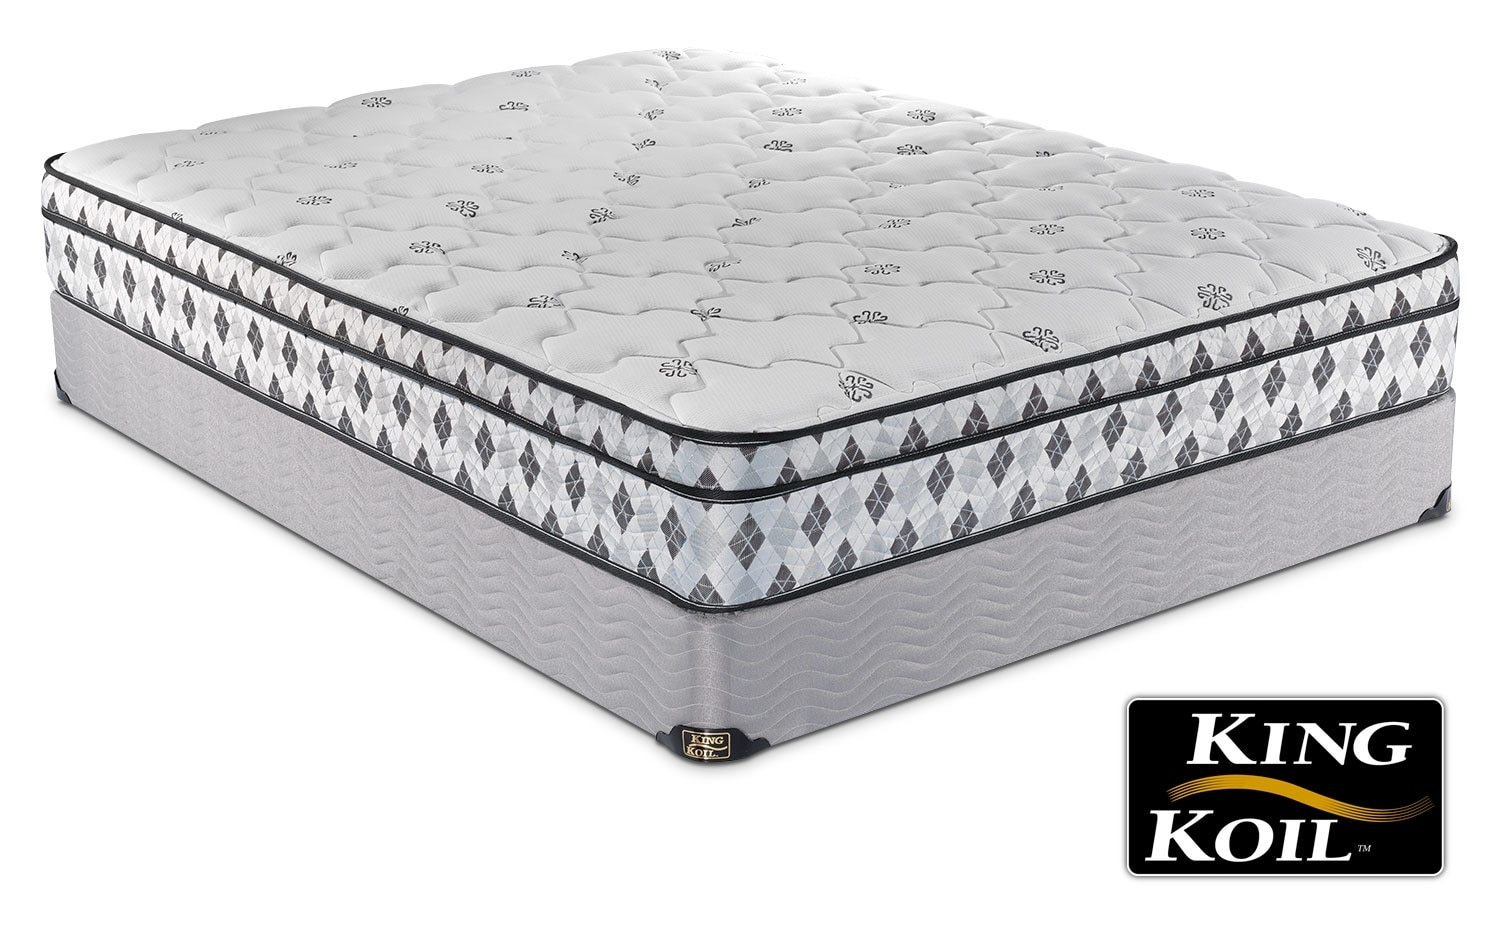 Mattresses and Bedding - King Koil Silent Night Twin Mattress/Boxspring Set